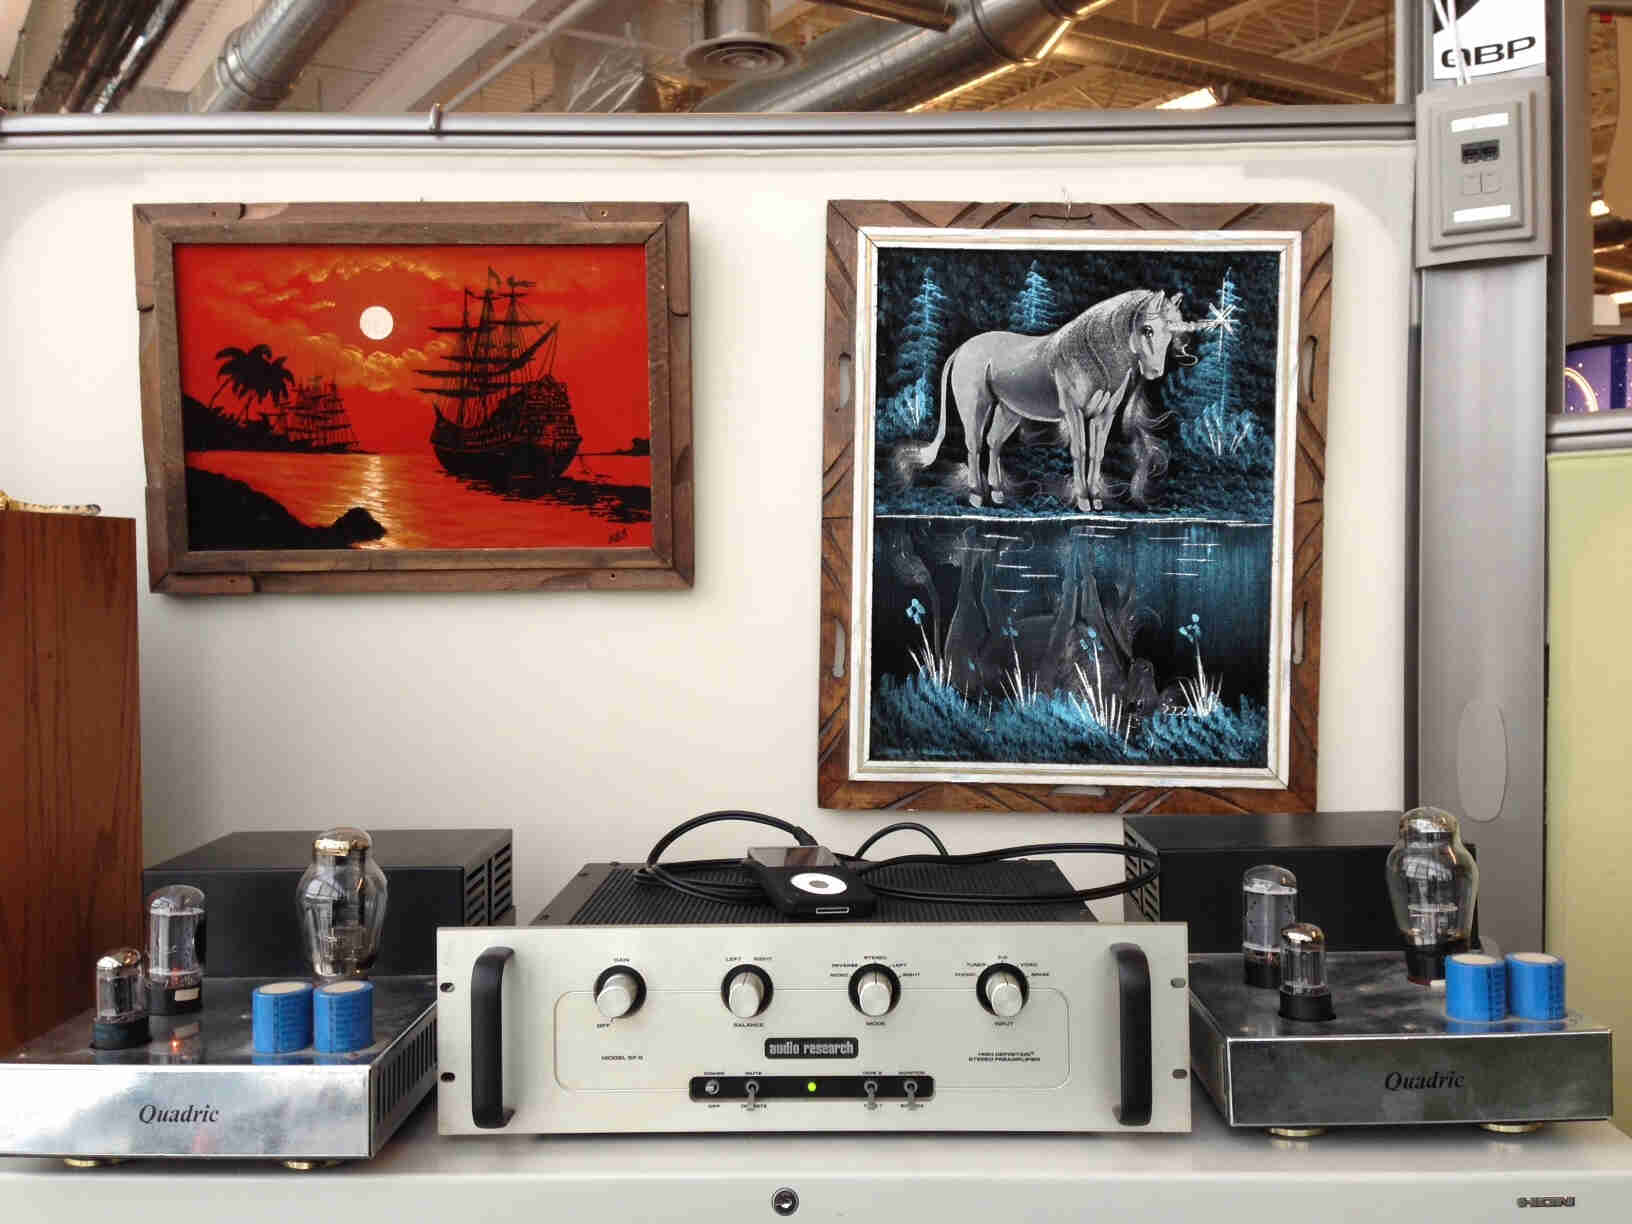 Front view of audio equipment, sitting on a table in an office cubicle, with framed paintings on the wall behind it